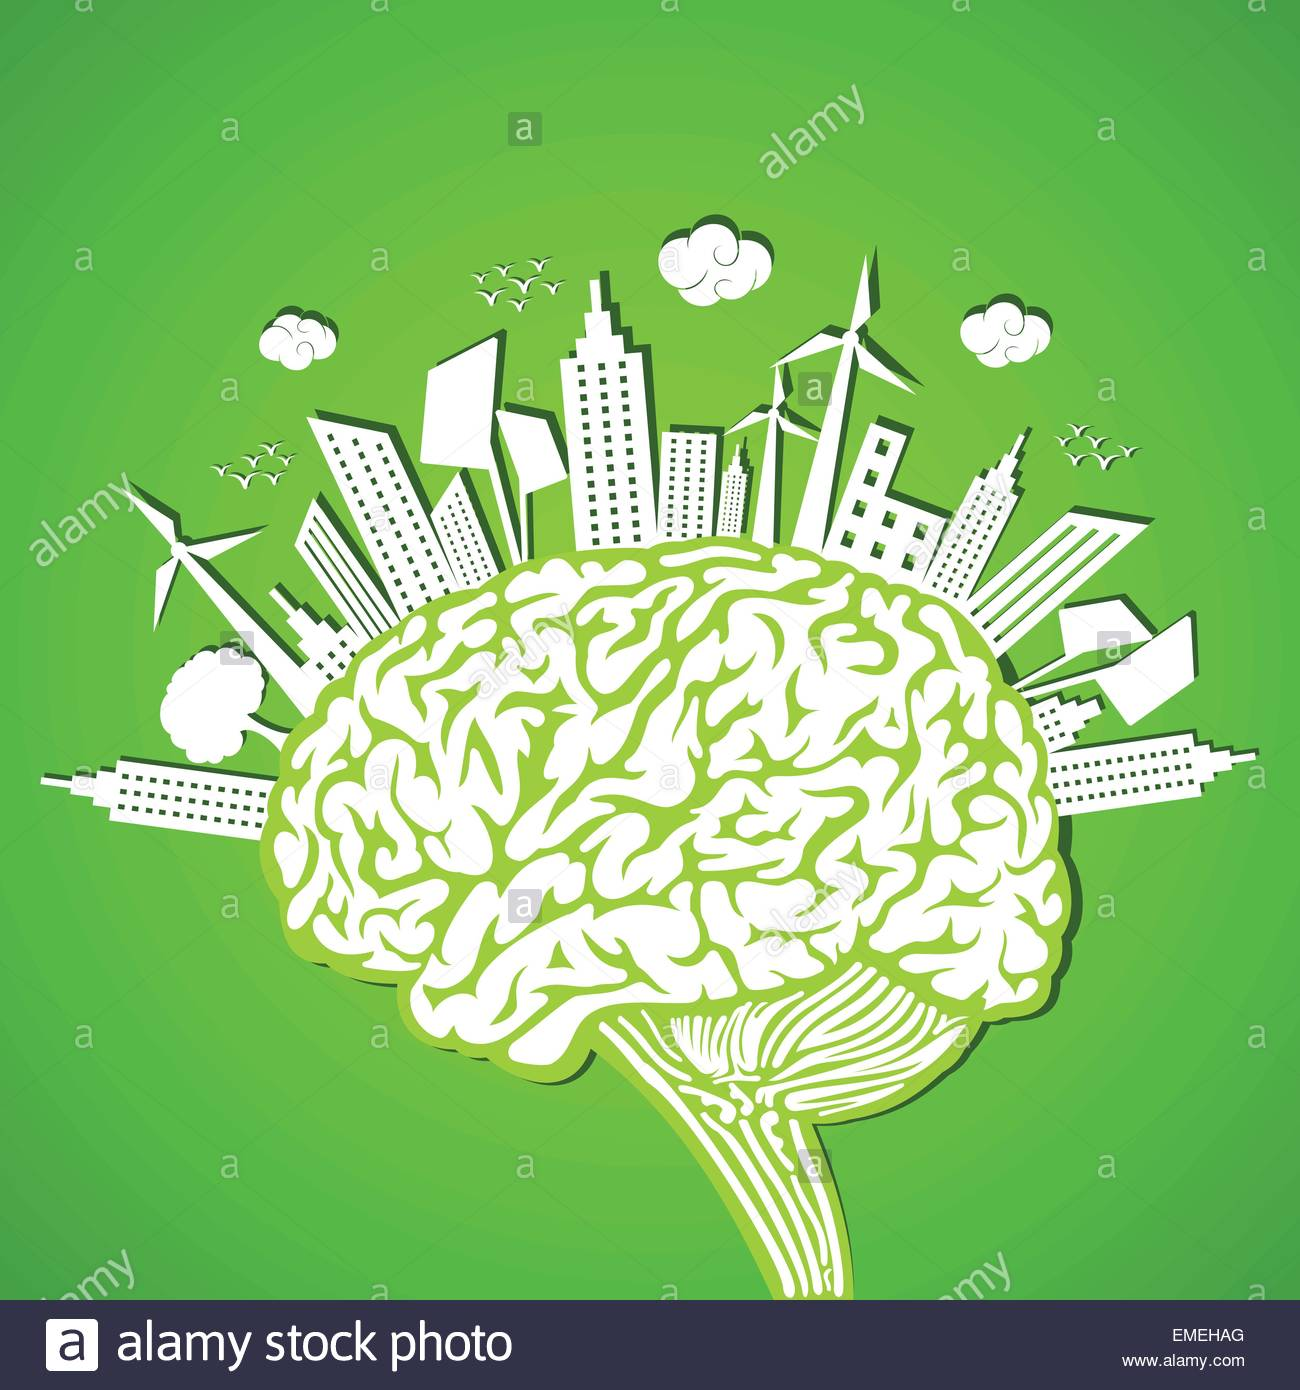 Ecology concept with brain - Stock Image